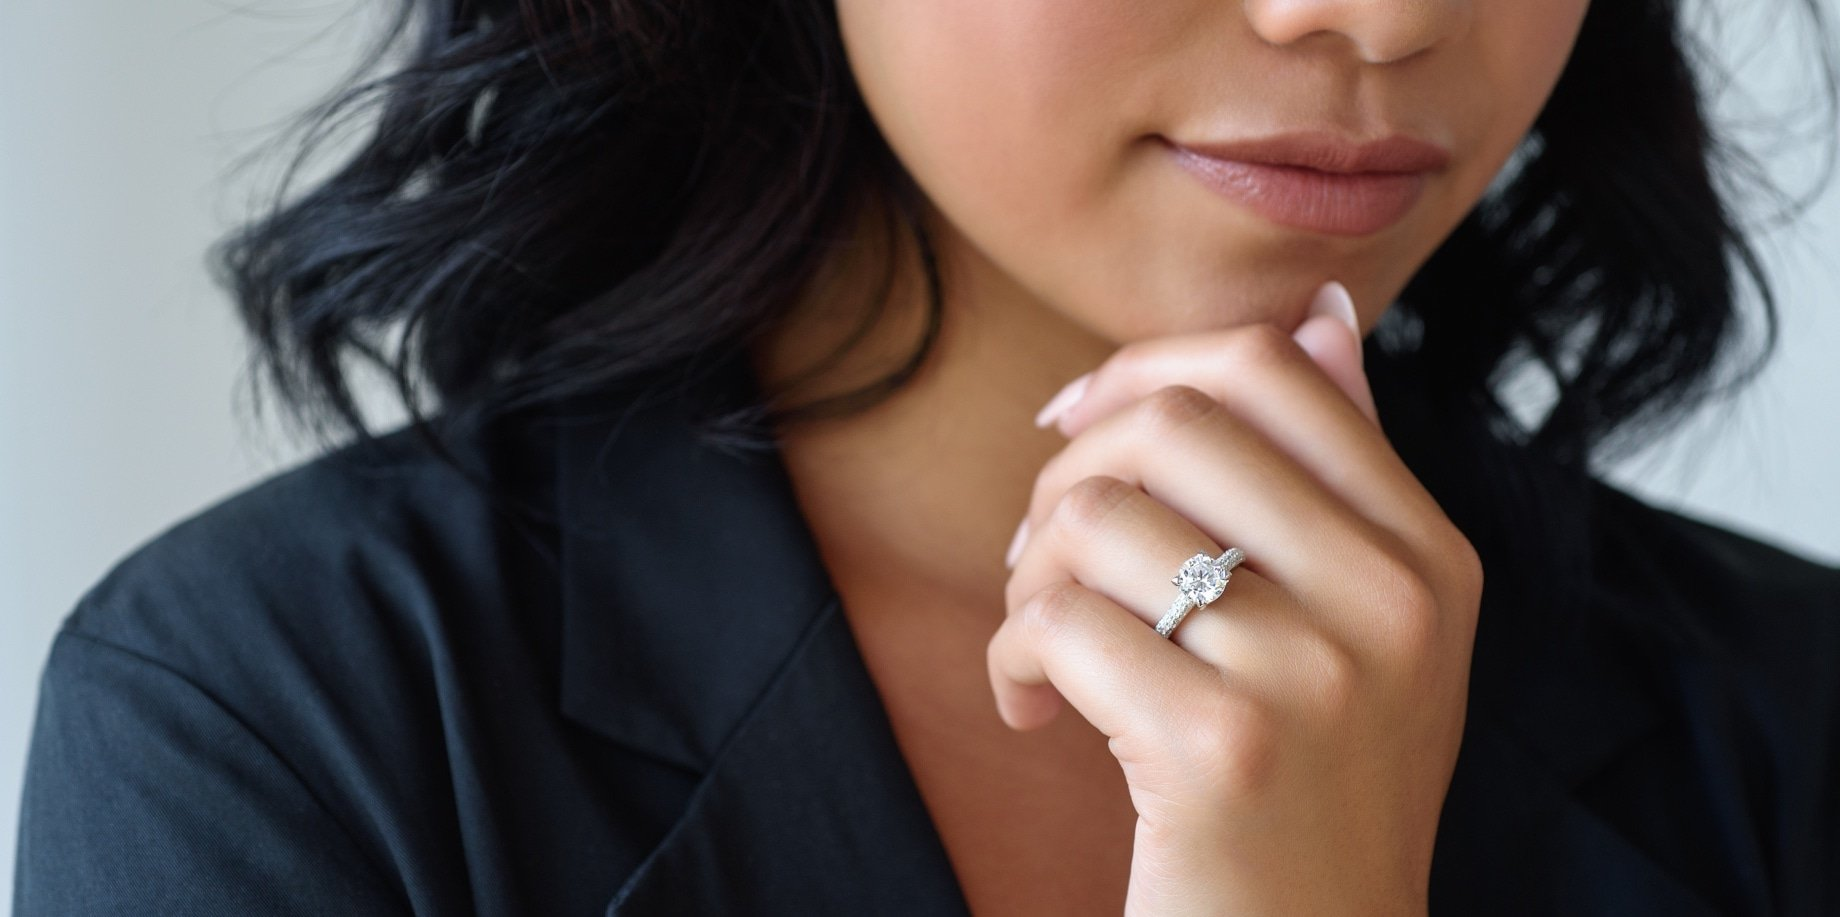 Lab Grown Diamond Engagement Ring from MiaDonna